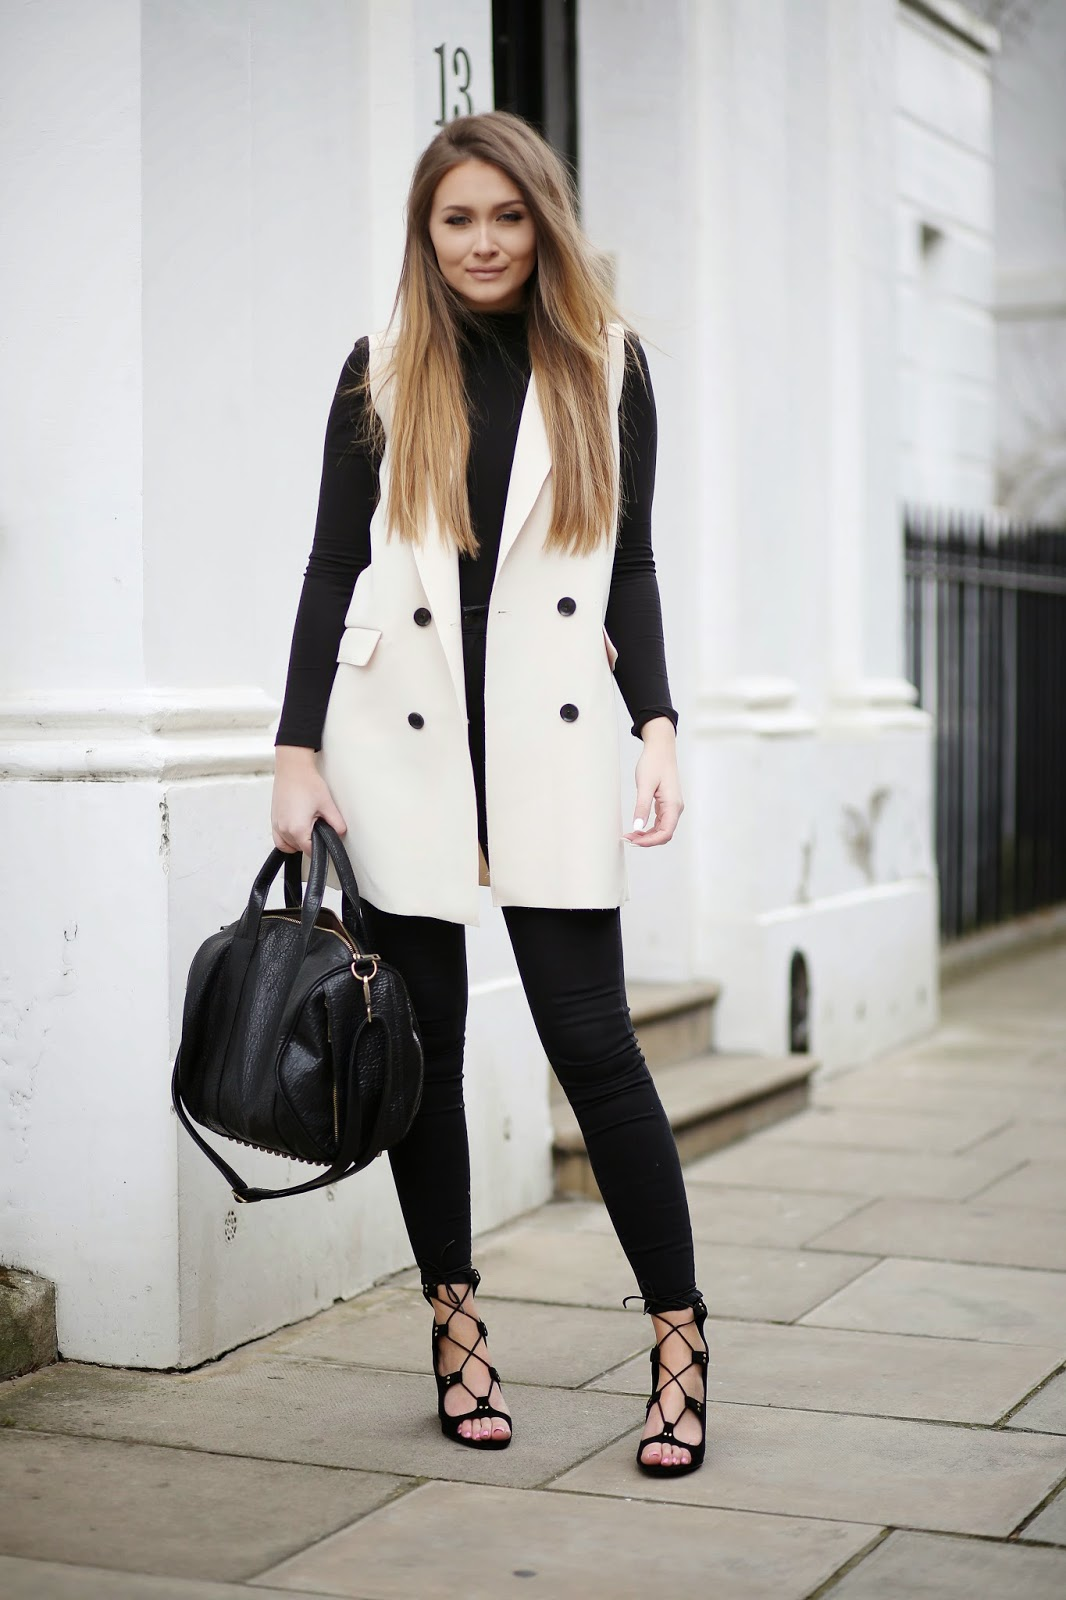 796f988c3739bd Sleeveless Fashion Trend  Sarah Ashcroft is wearing a white sleeveless Mac  bershka jacket